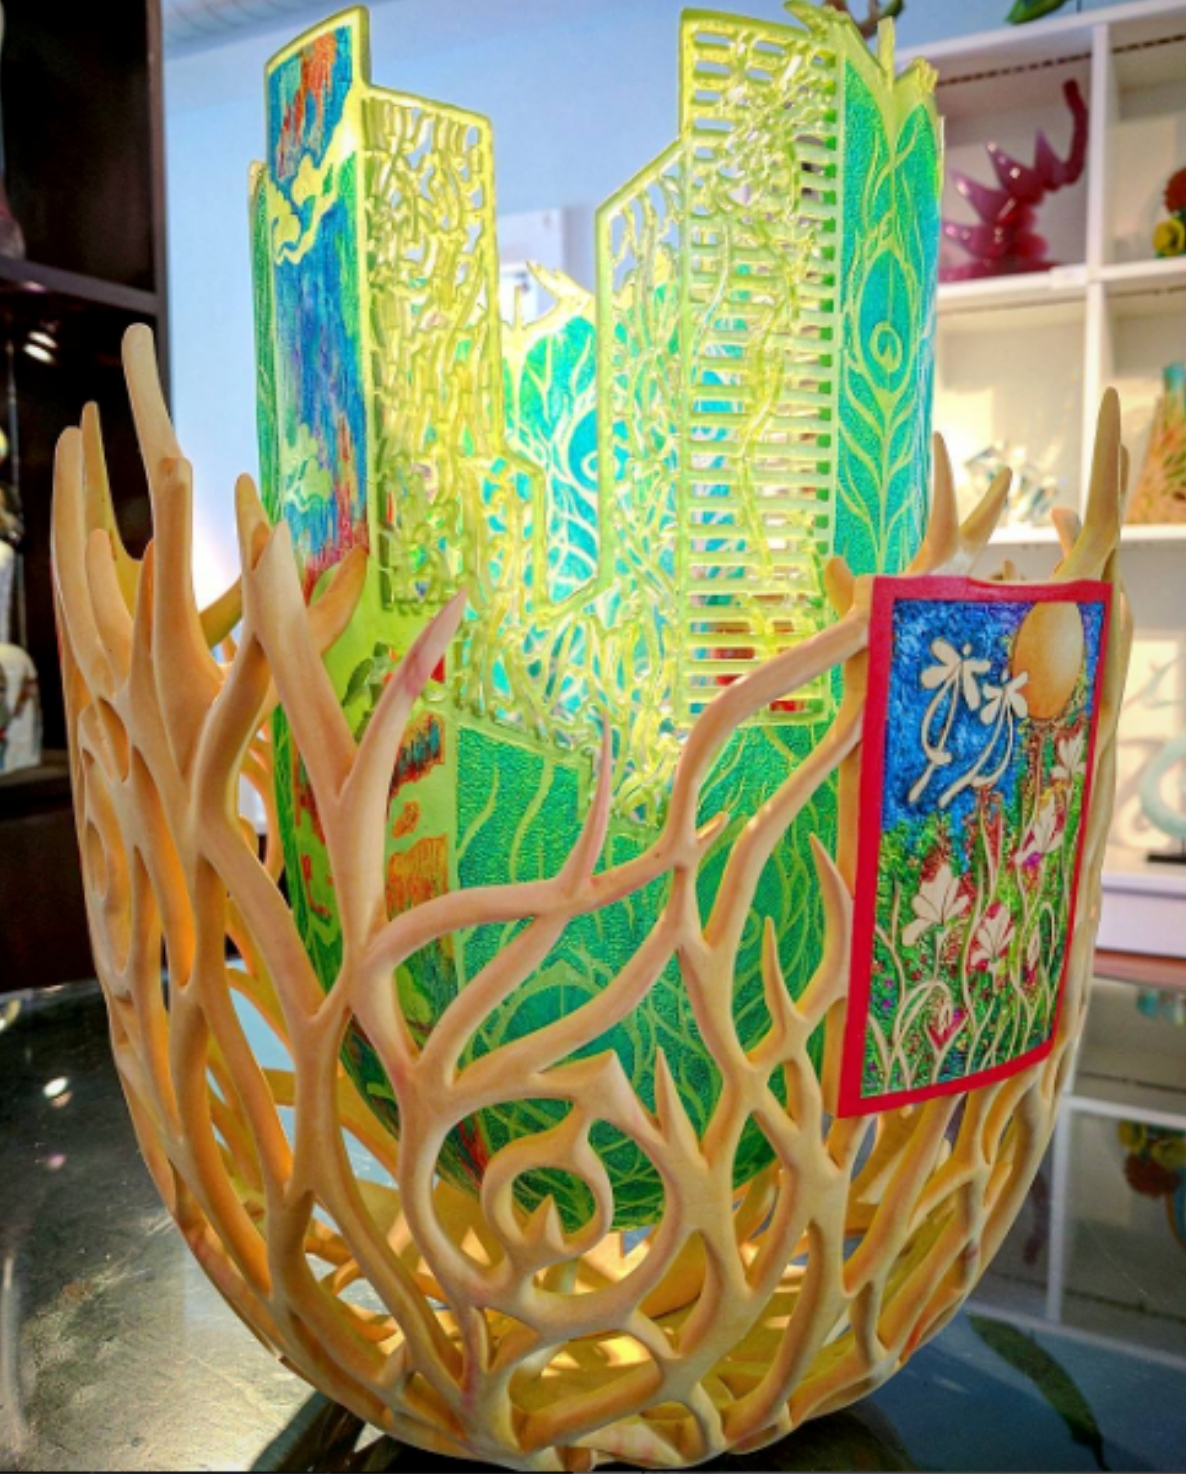 Wood and cast glass sculpture with painted detail by Binh Pho